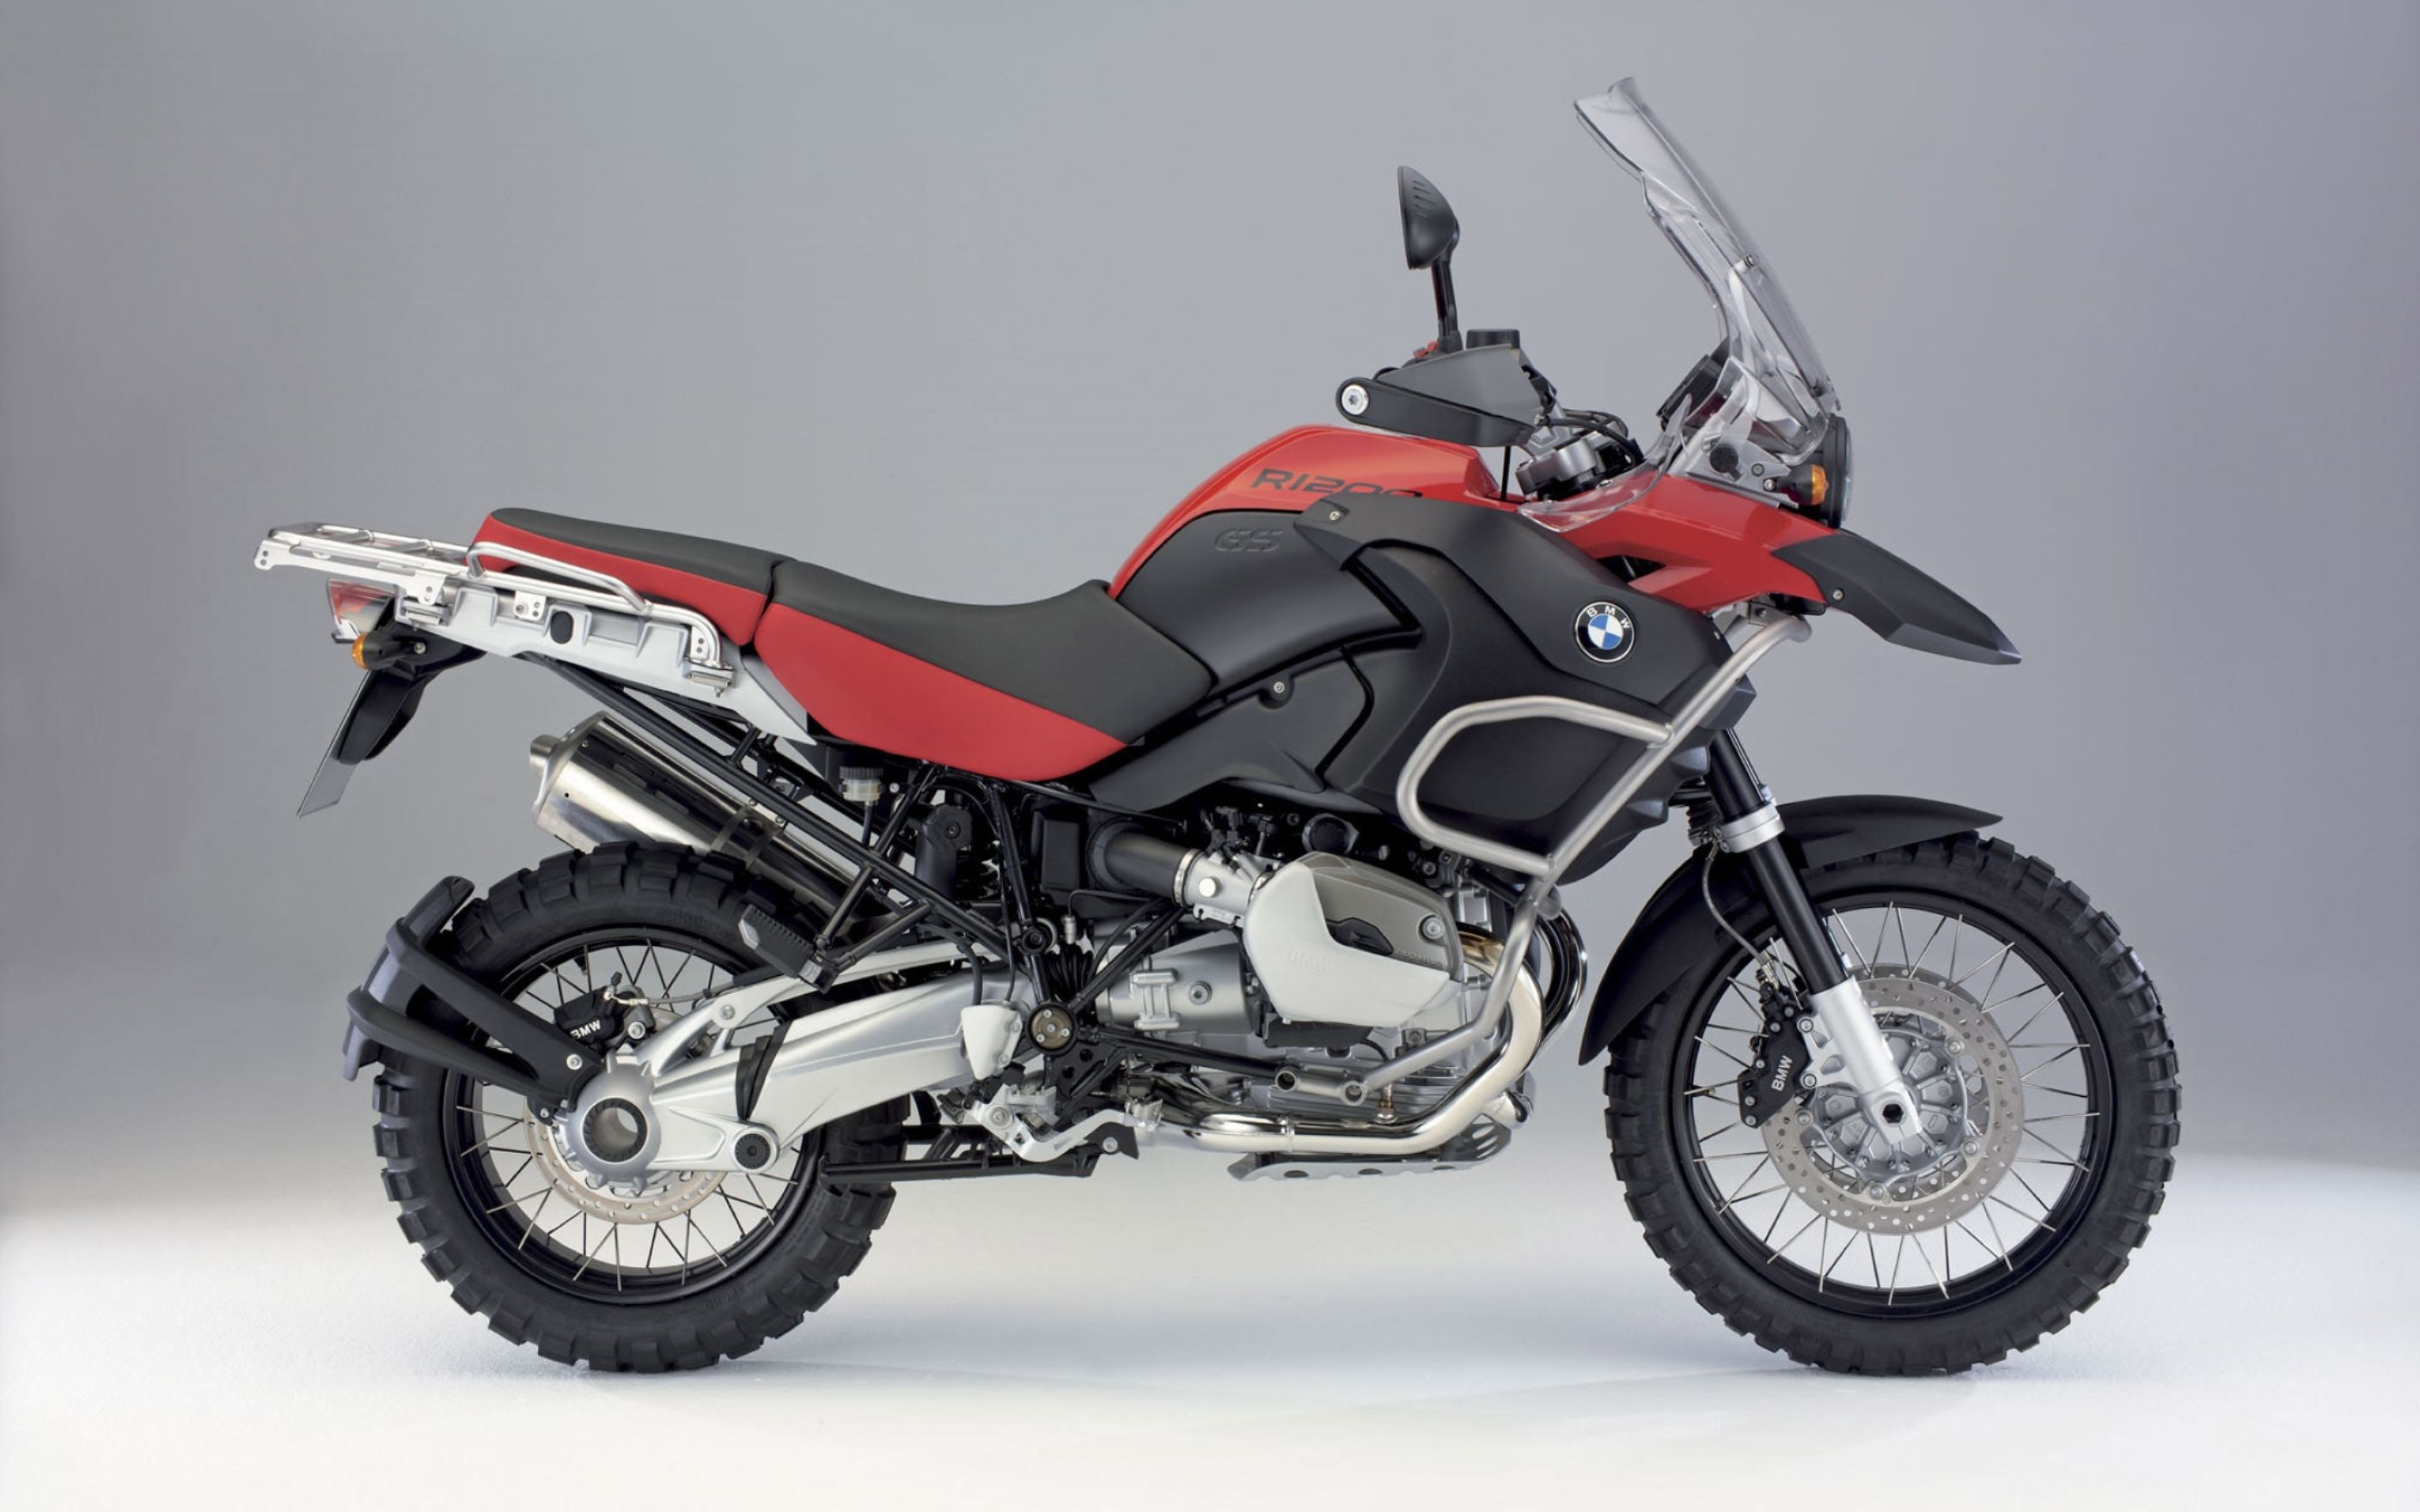 Download free HD Bmw R 1200 GS Adventure Wallpaper, image